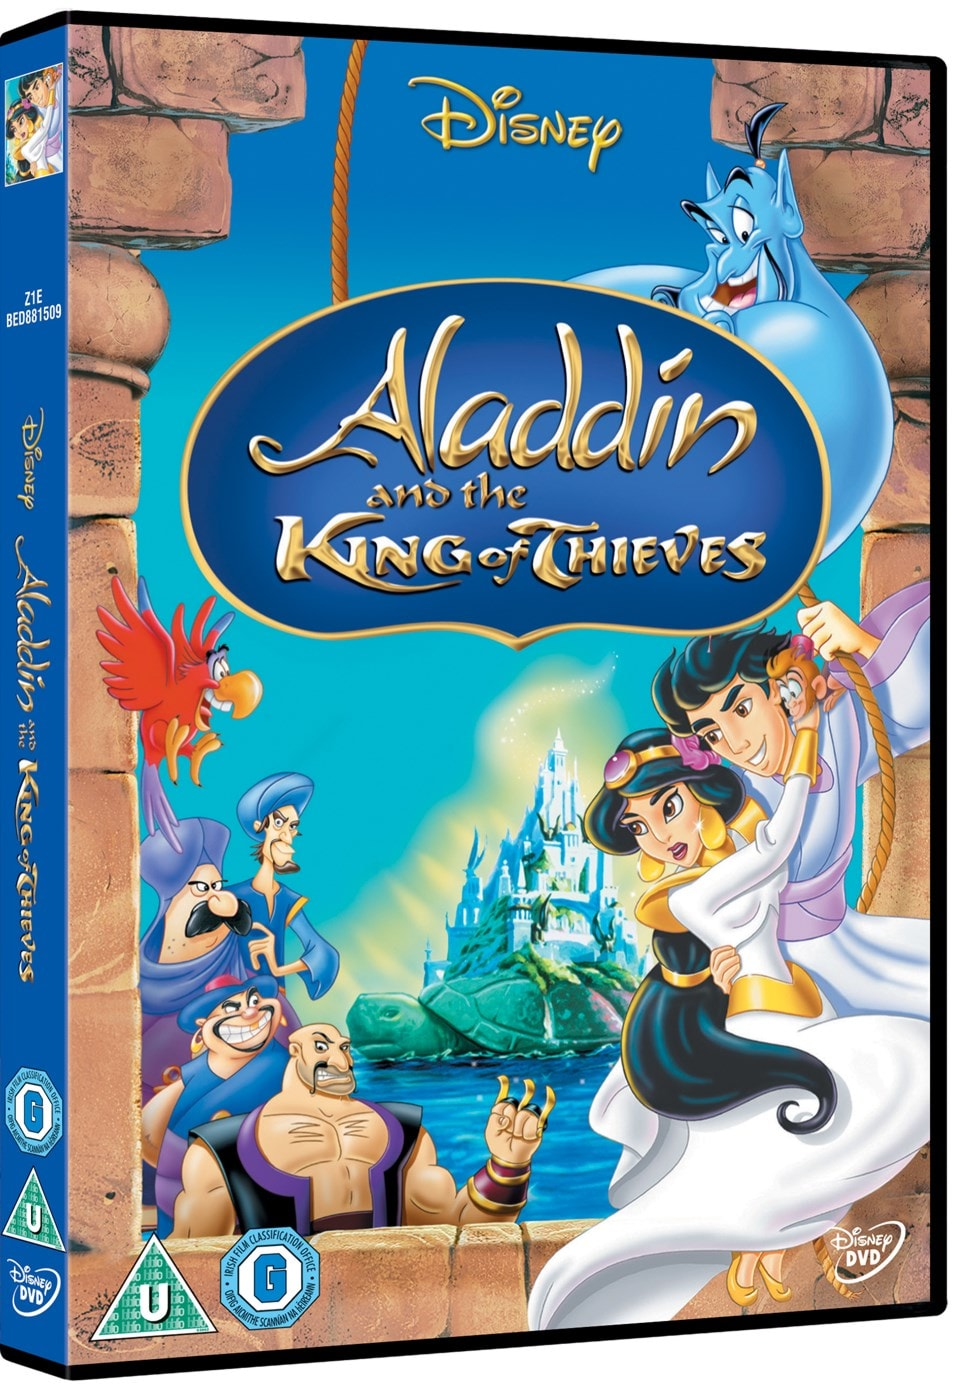 Aladdin and the King of Thieves - 2